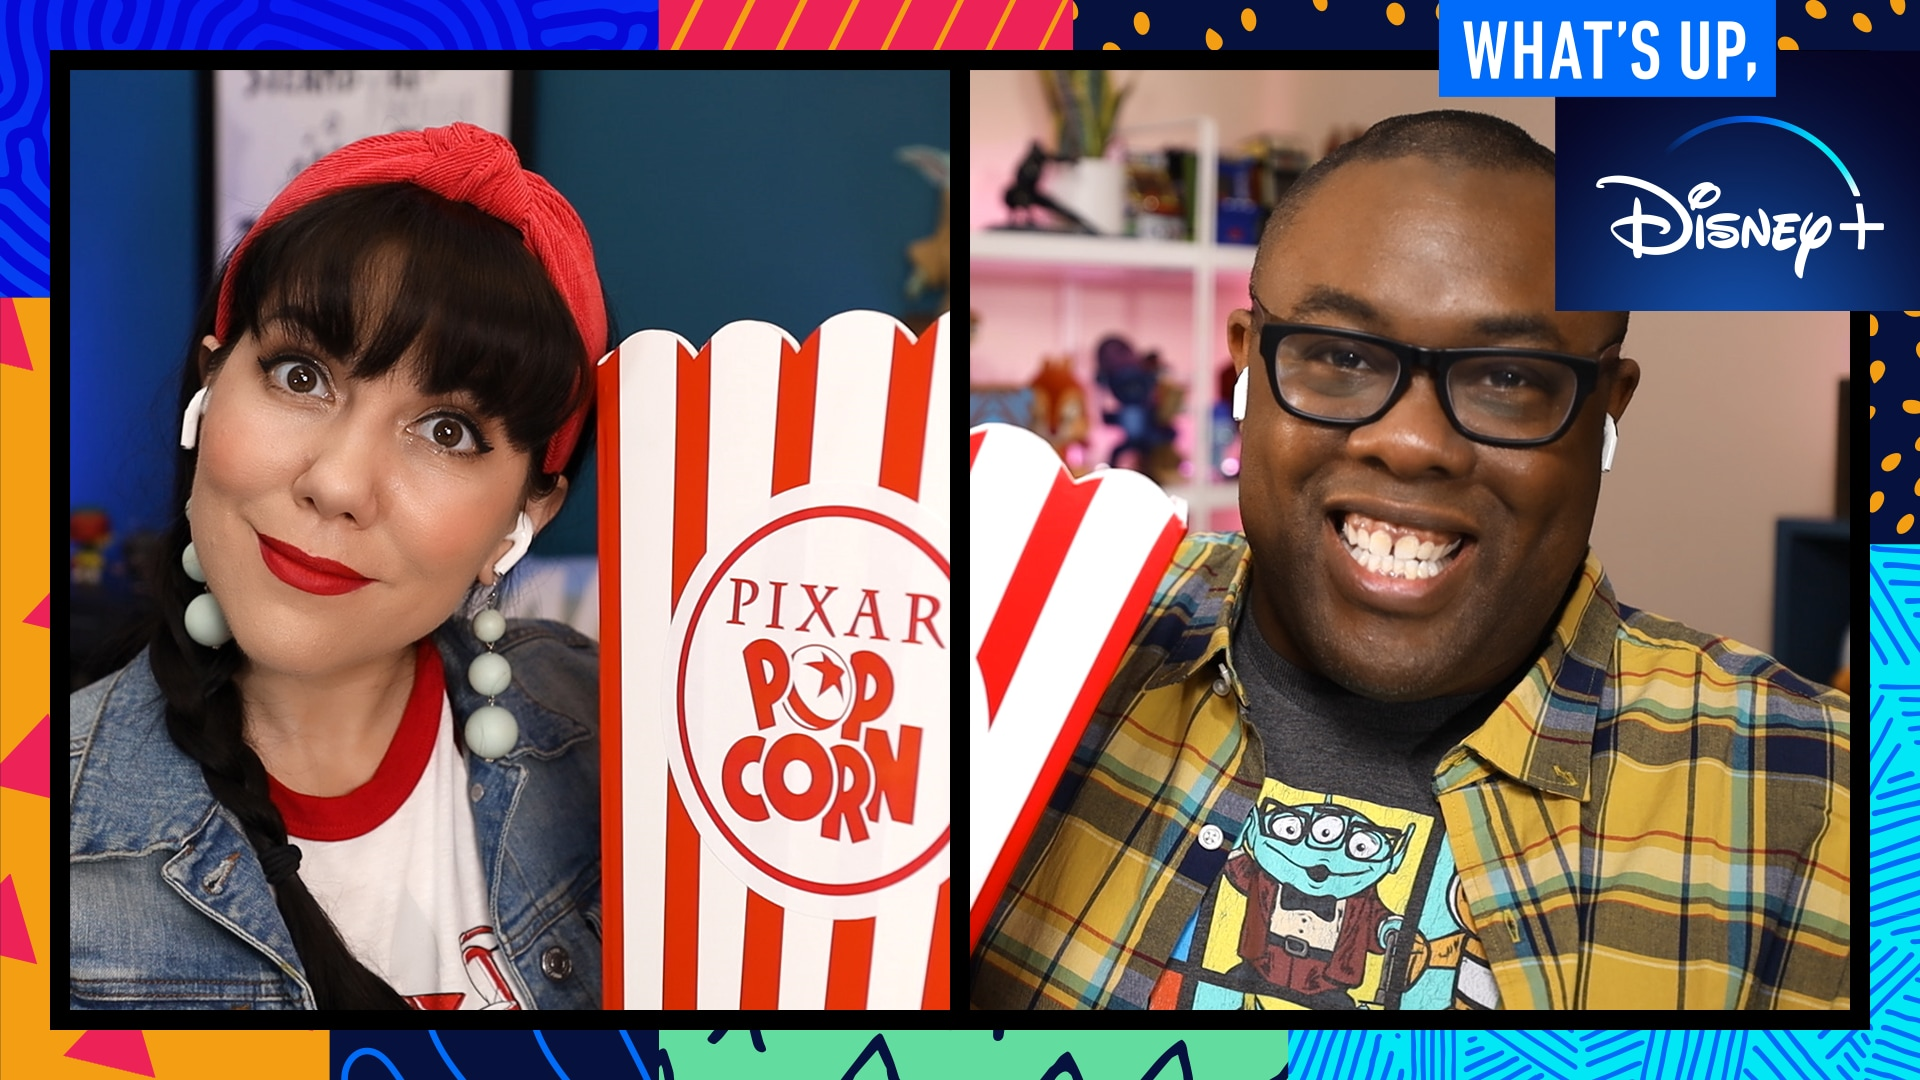 Pixar Popcorn Trivia and One Hundred and One Dalmatians' 60th Anniversary | What's Up, Disney+ | Episode 12